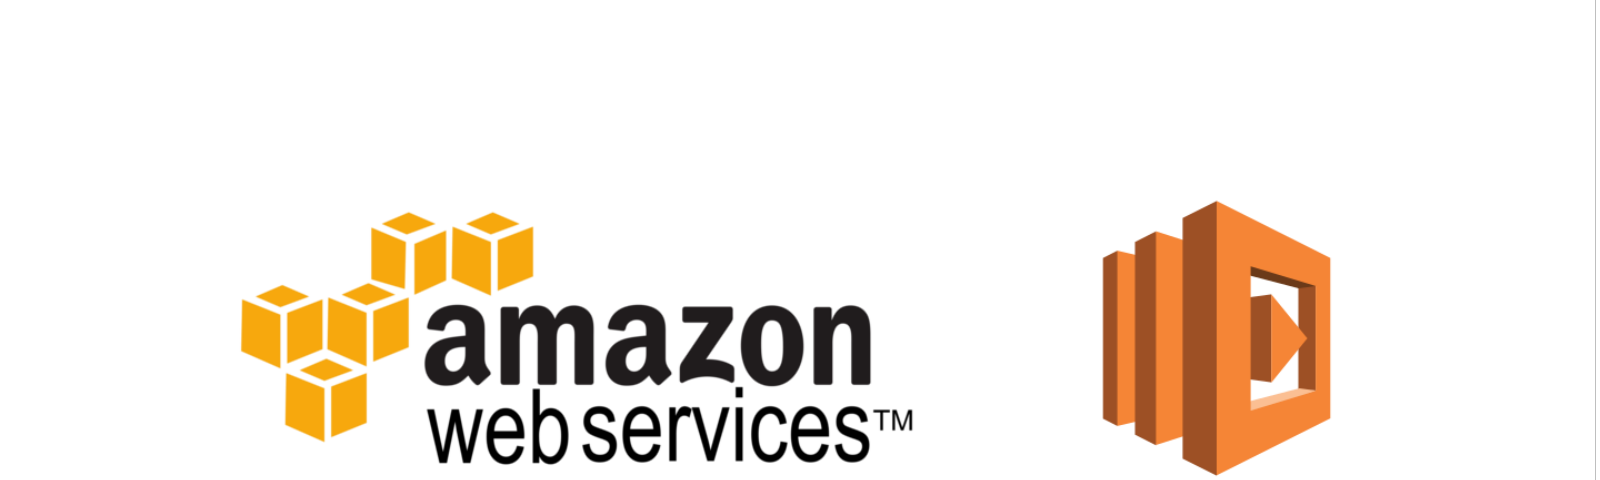 Our Experience with Amazon Lambda - Hipo